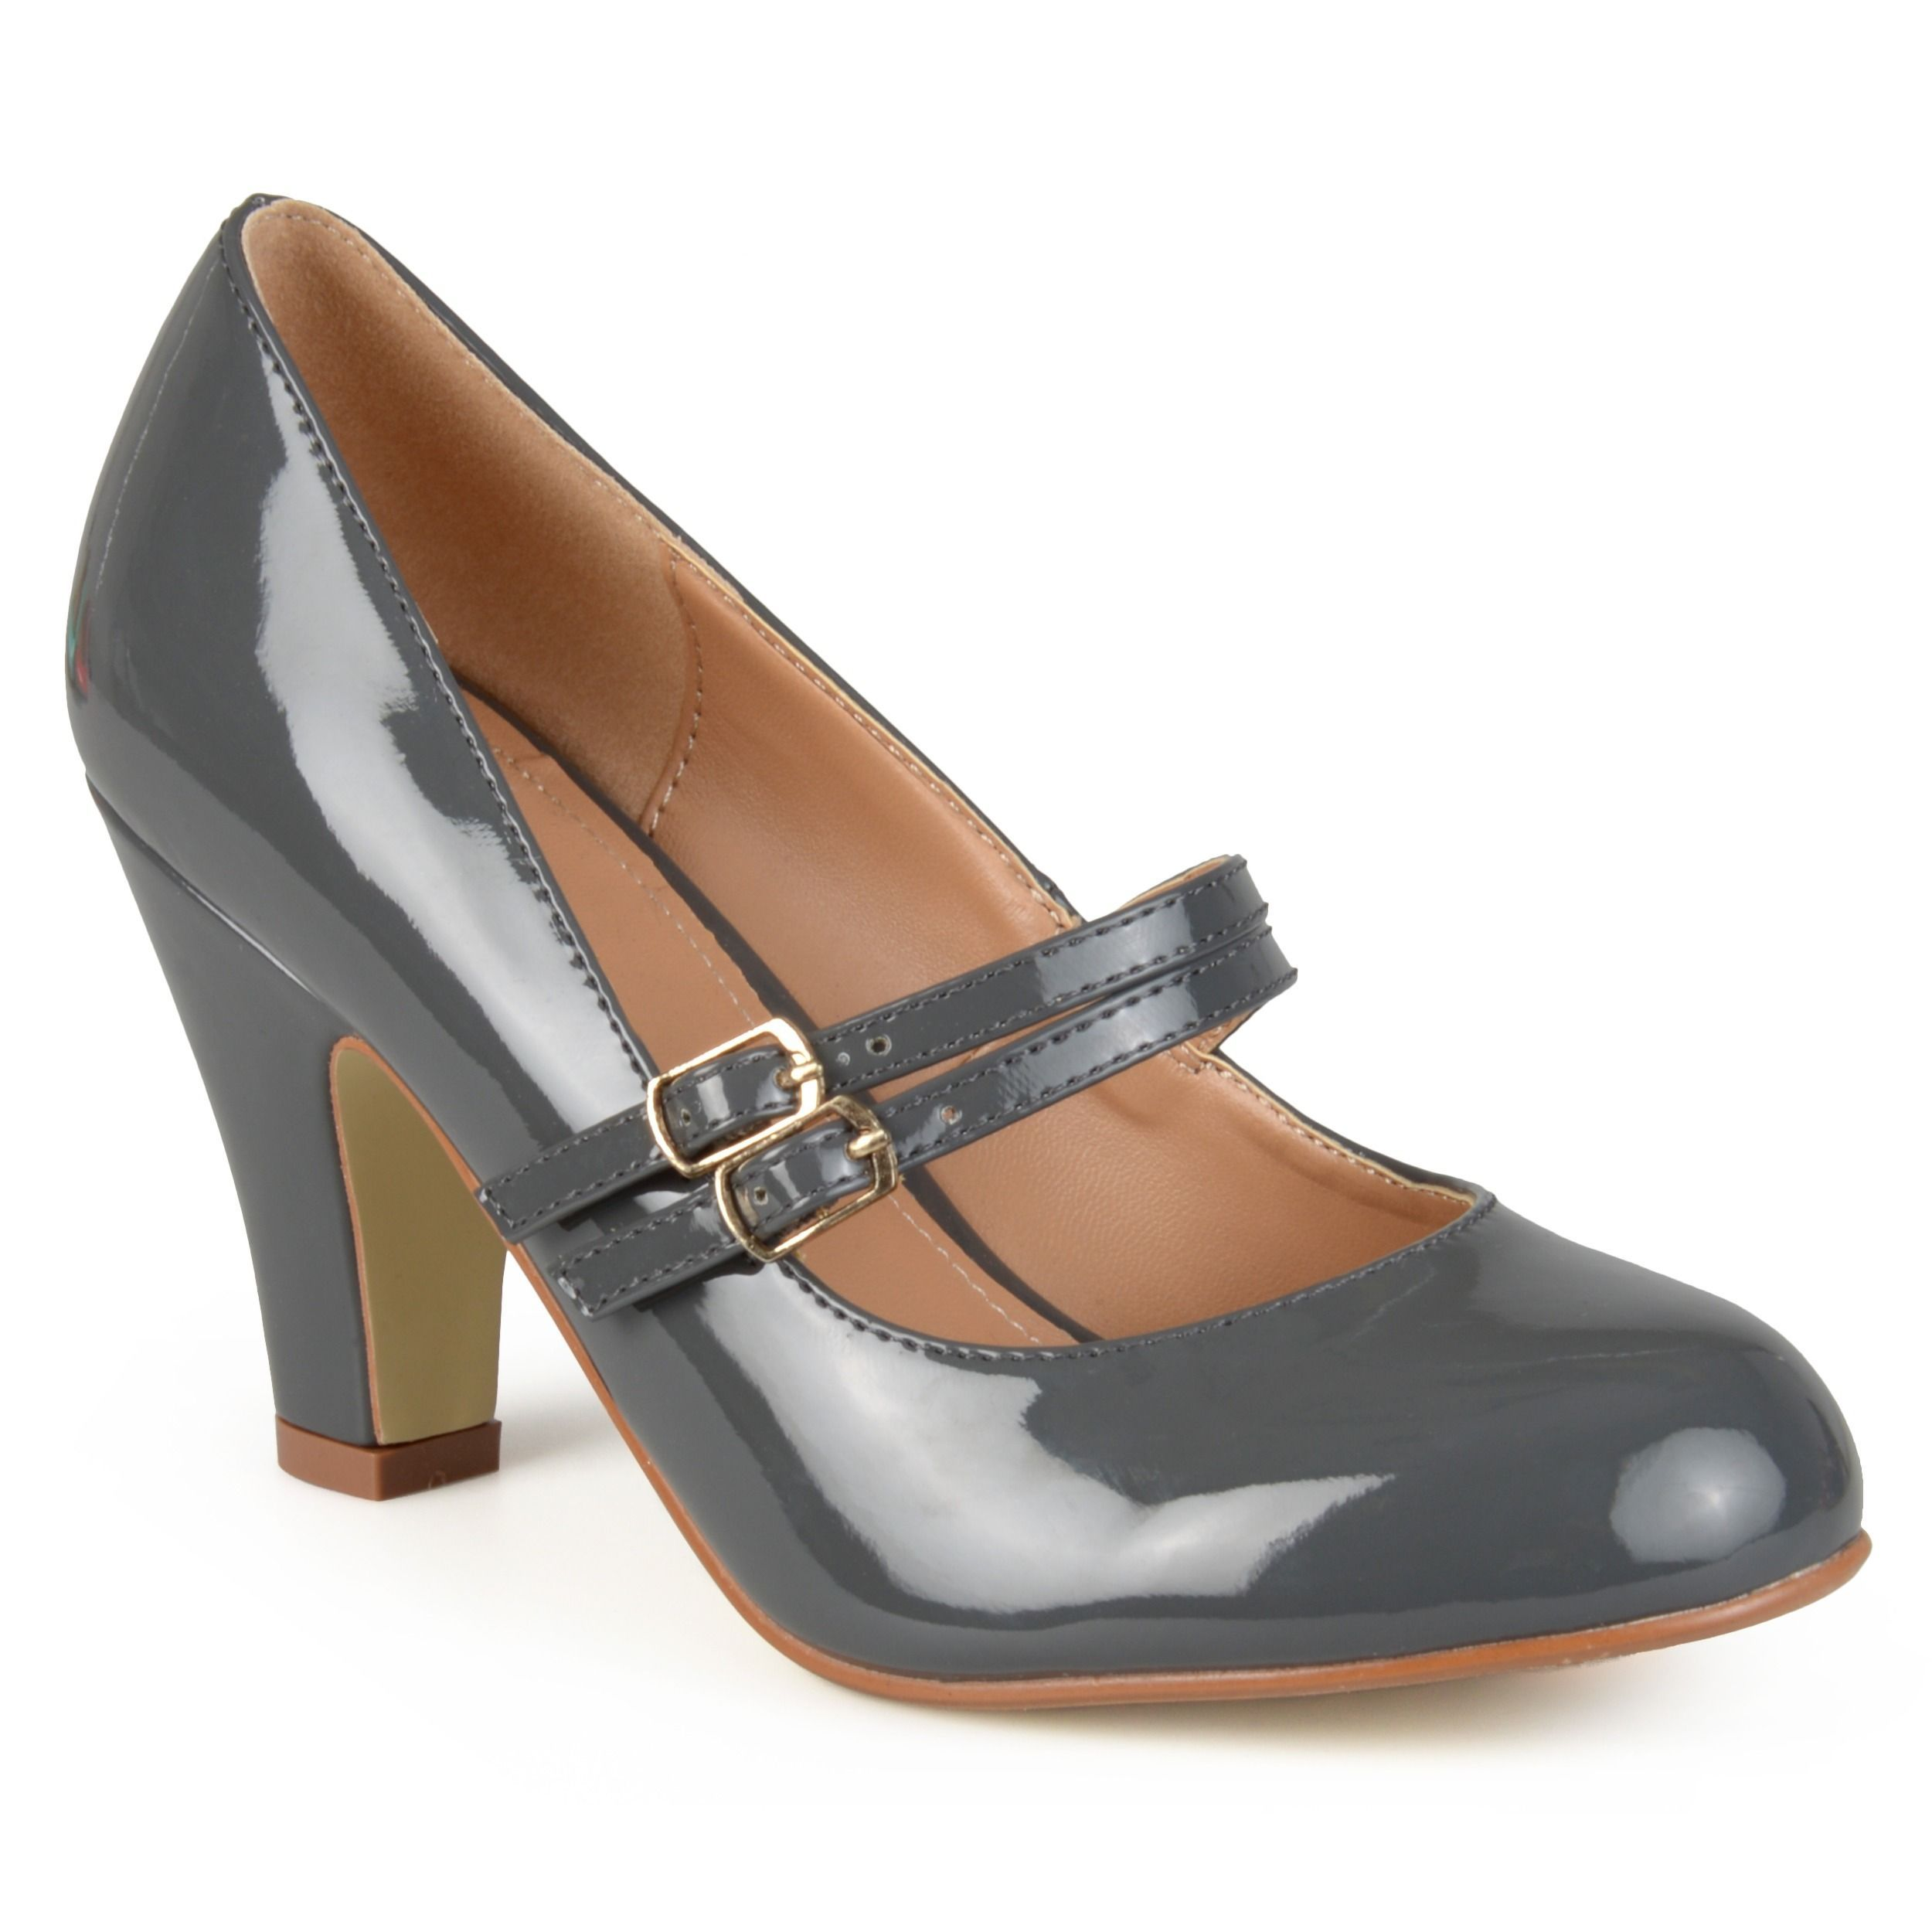 Journee Collection Women's 'Wendy-09' Mary Jane Faux Pumps